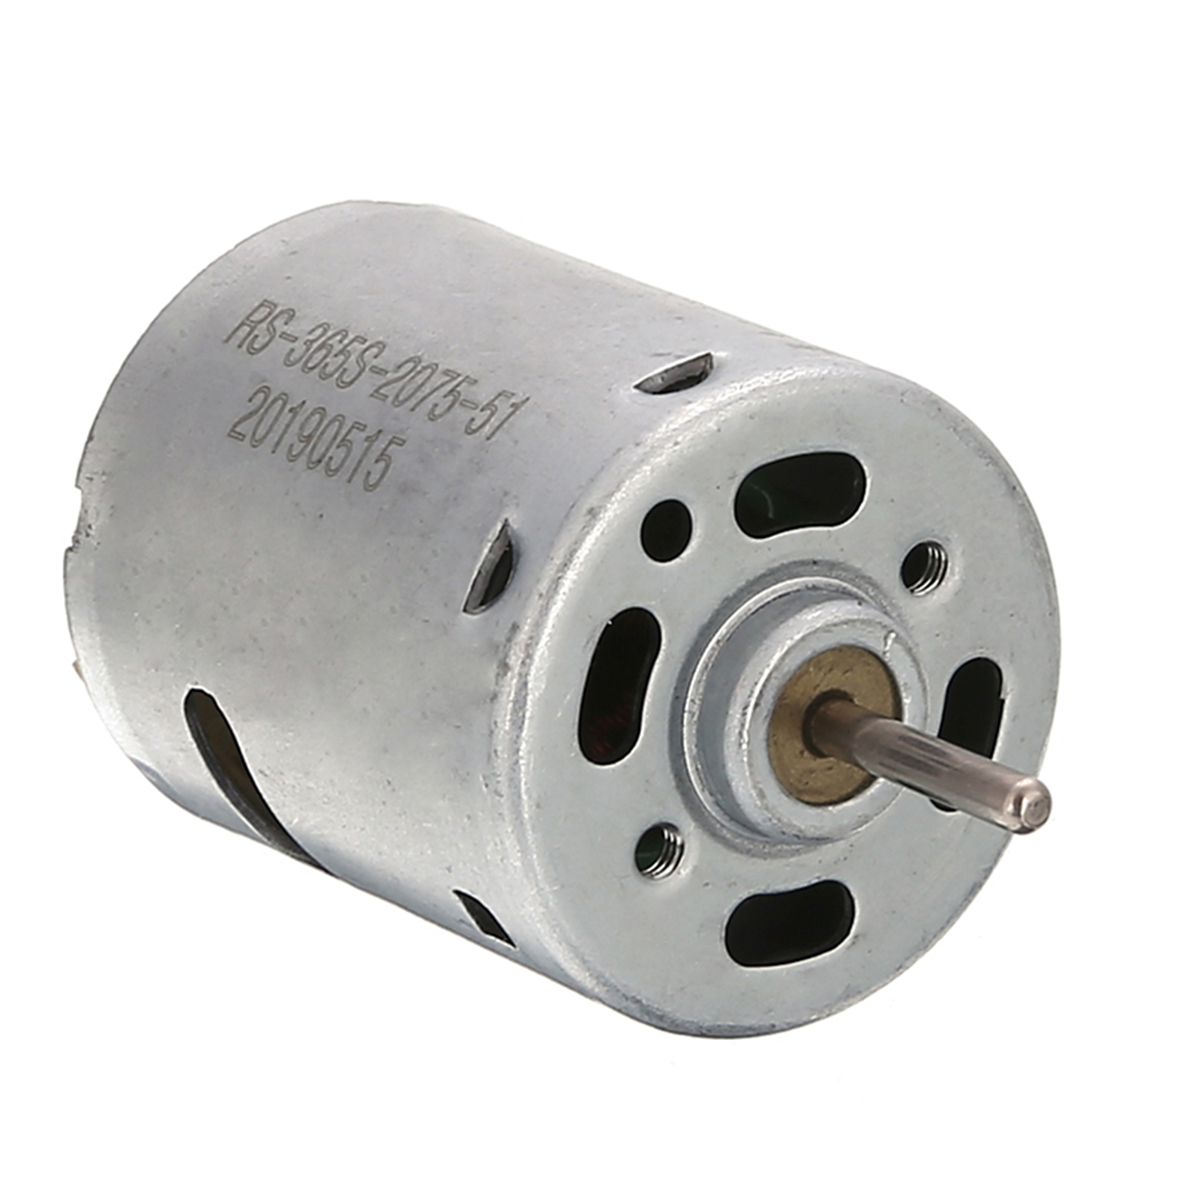 New 6-12V 5000RPM Mini DC Motor High Speed Micro DC 365 Motor For DIY Small Electric Drill Motor